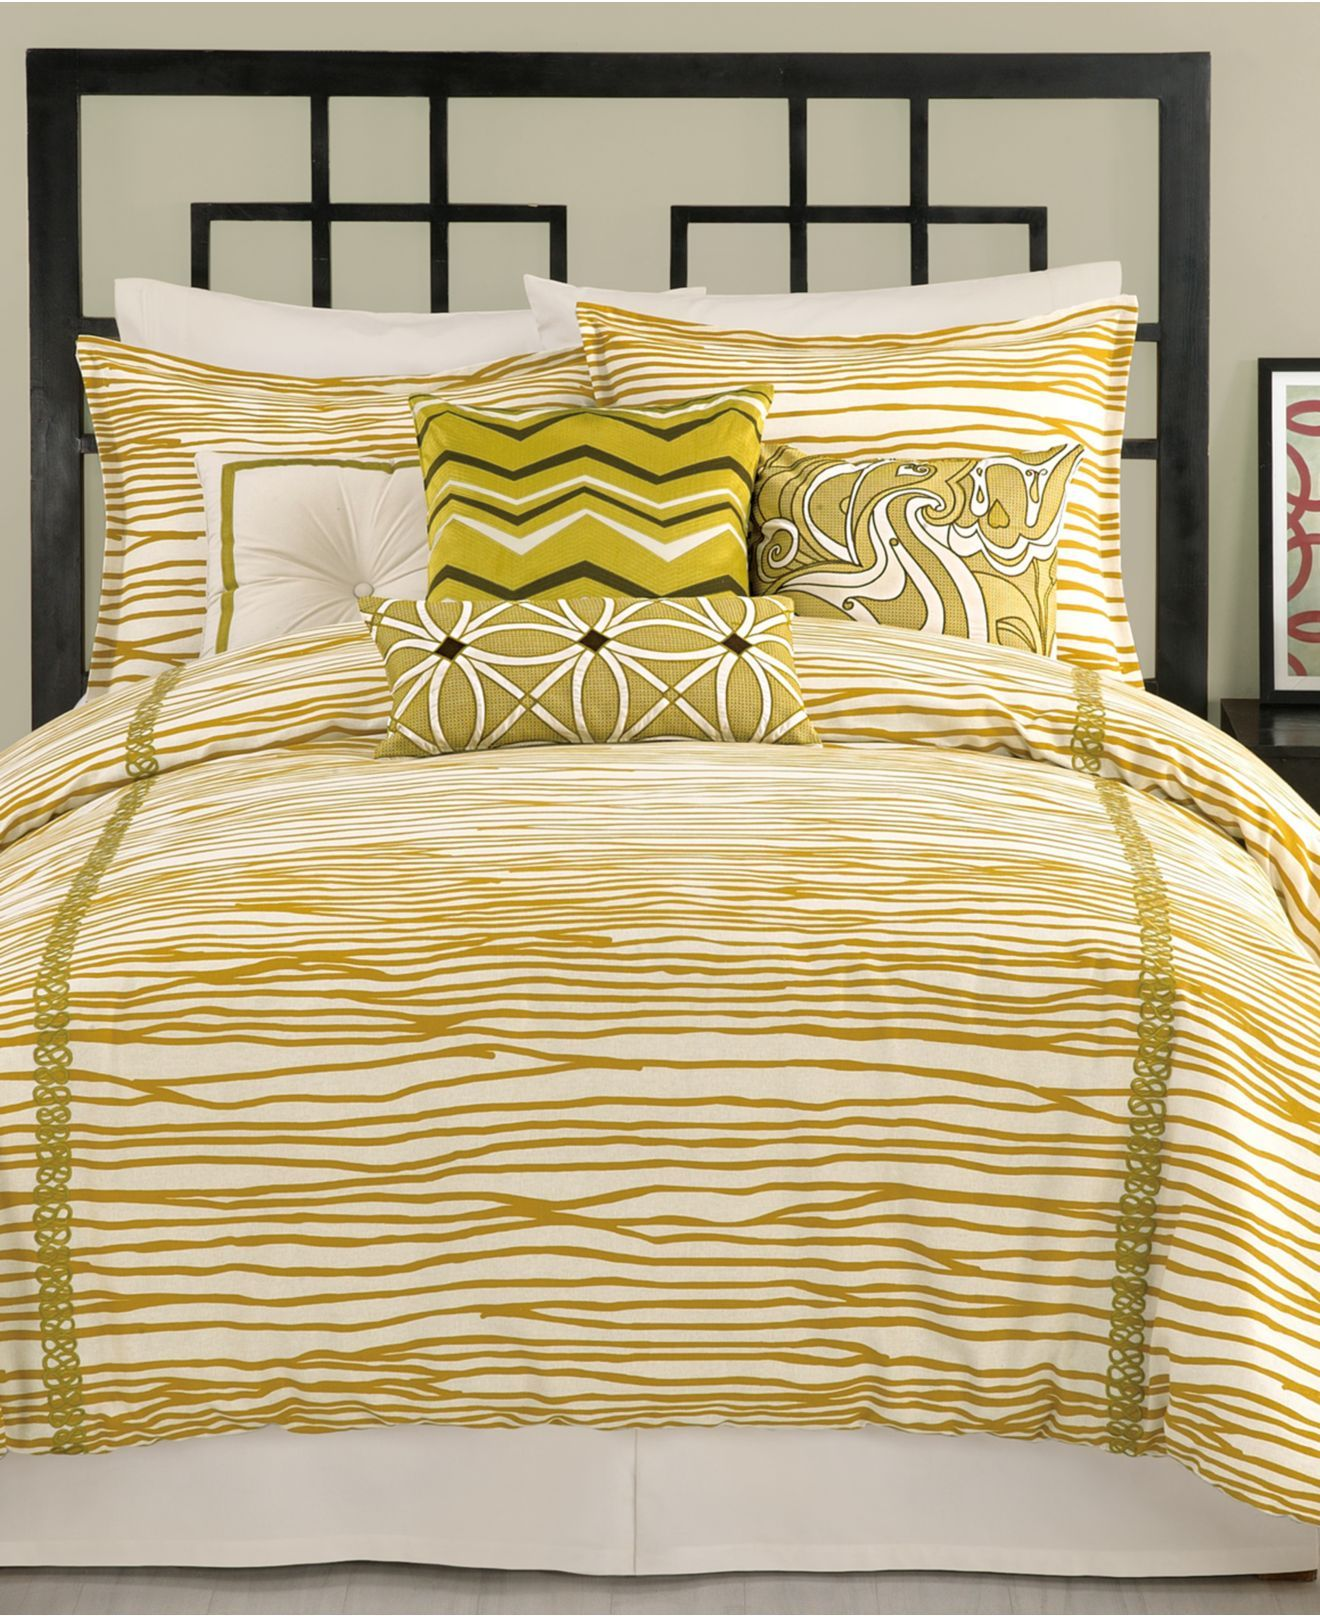 Trina Turk Bedding, Vintage Stripe Comforter Sets - Apartment Bedding - Bed & Bath - Macy's